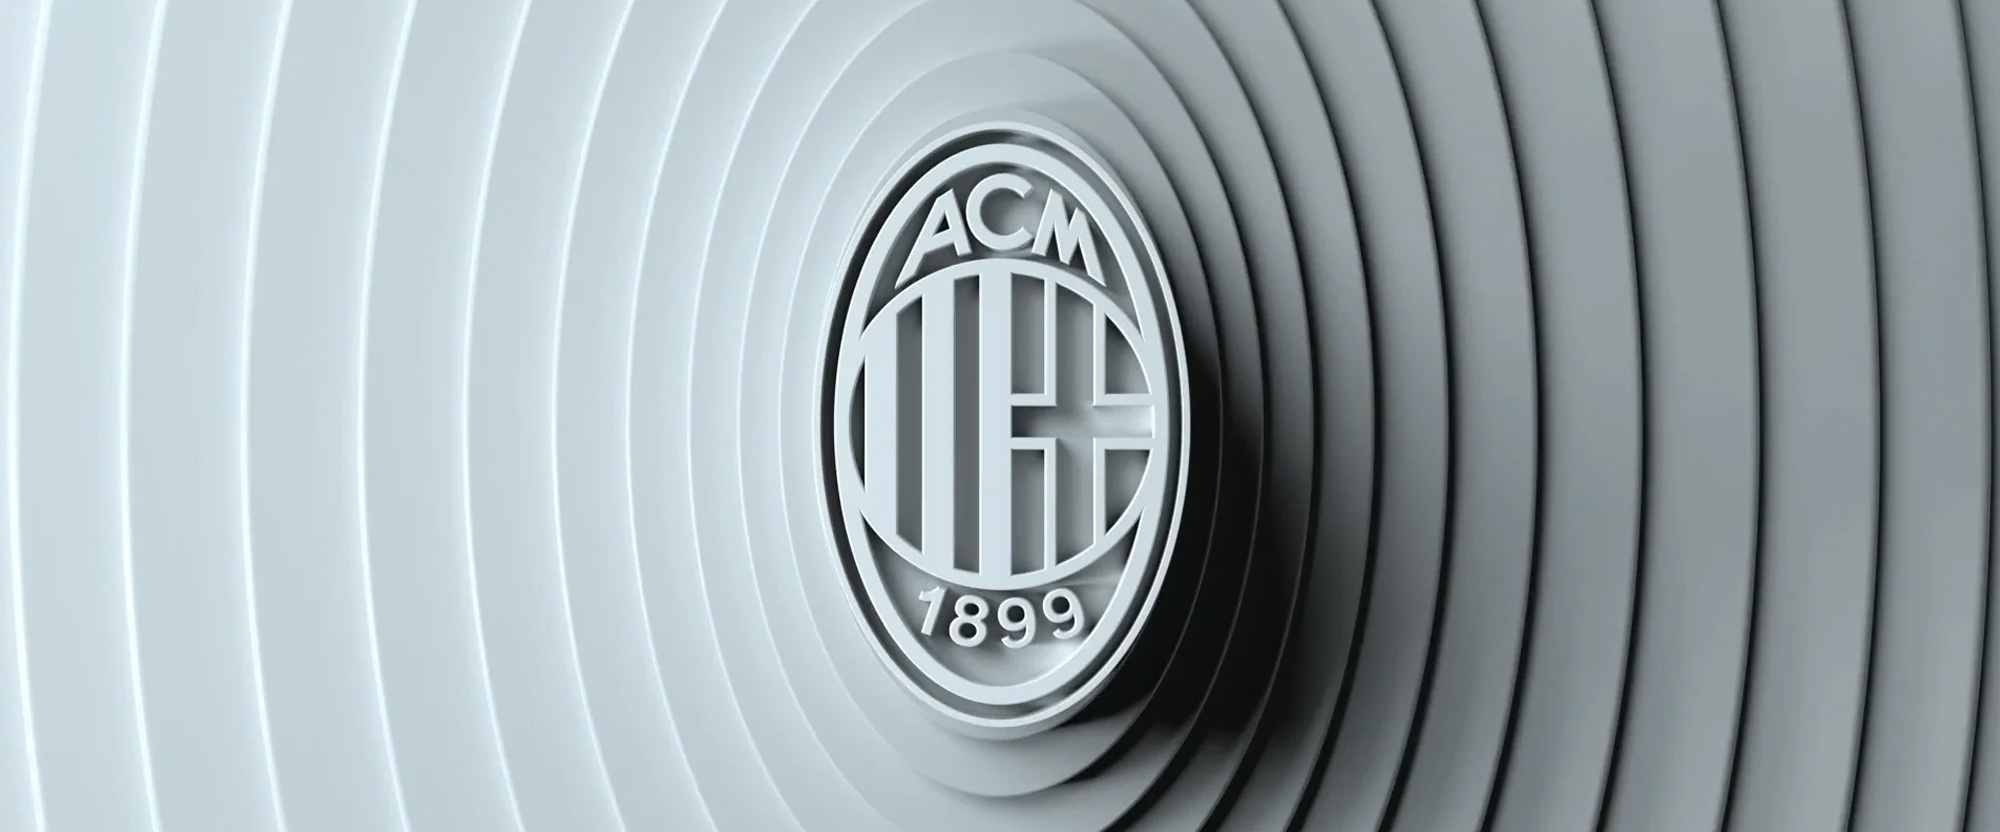 New Identity for A.C. Milan by DixonBaxi